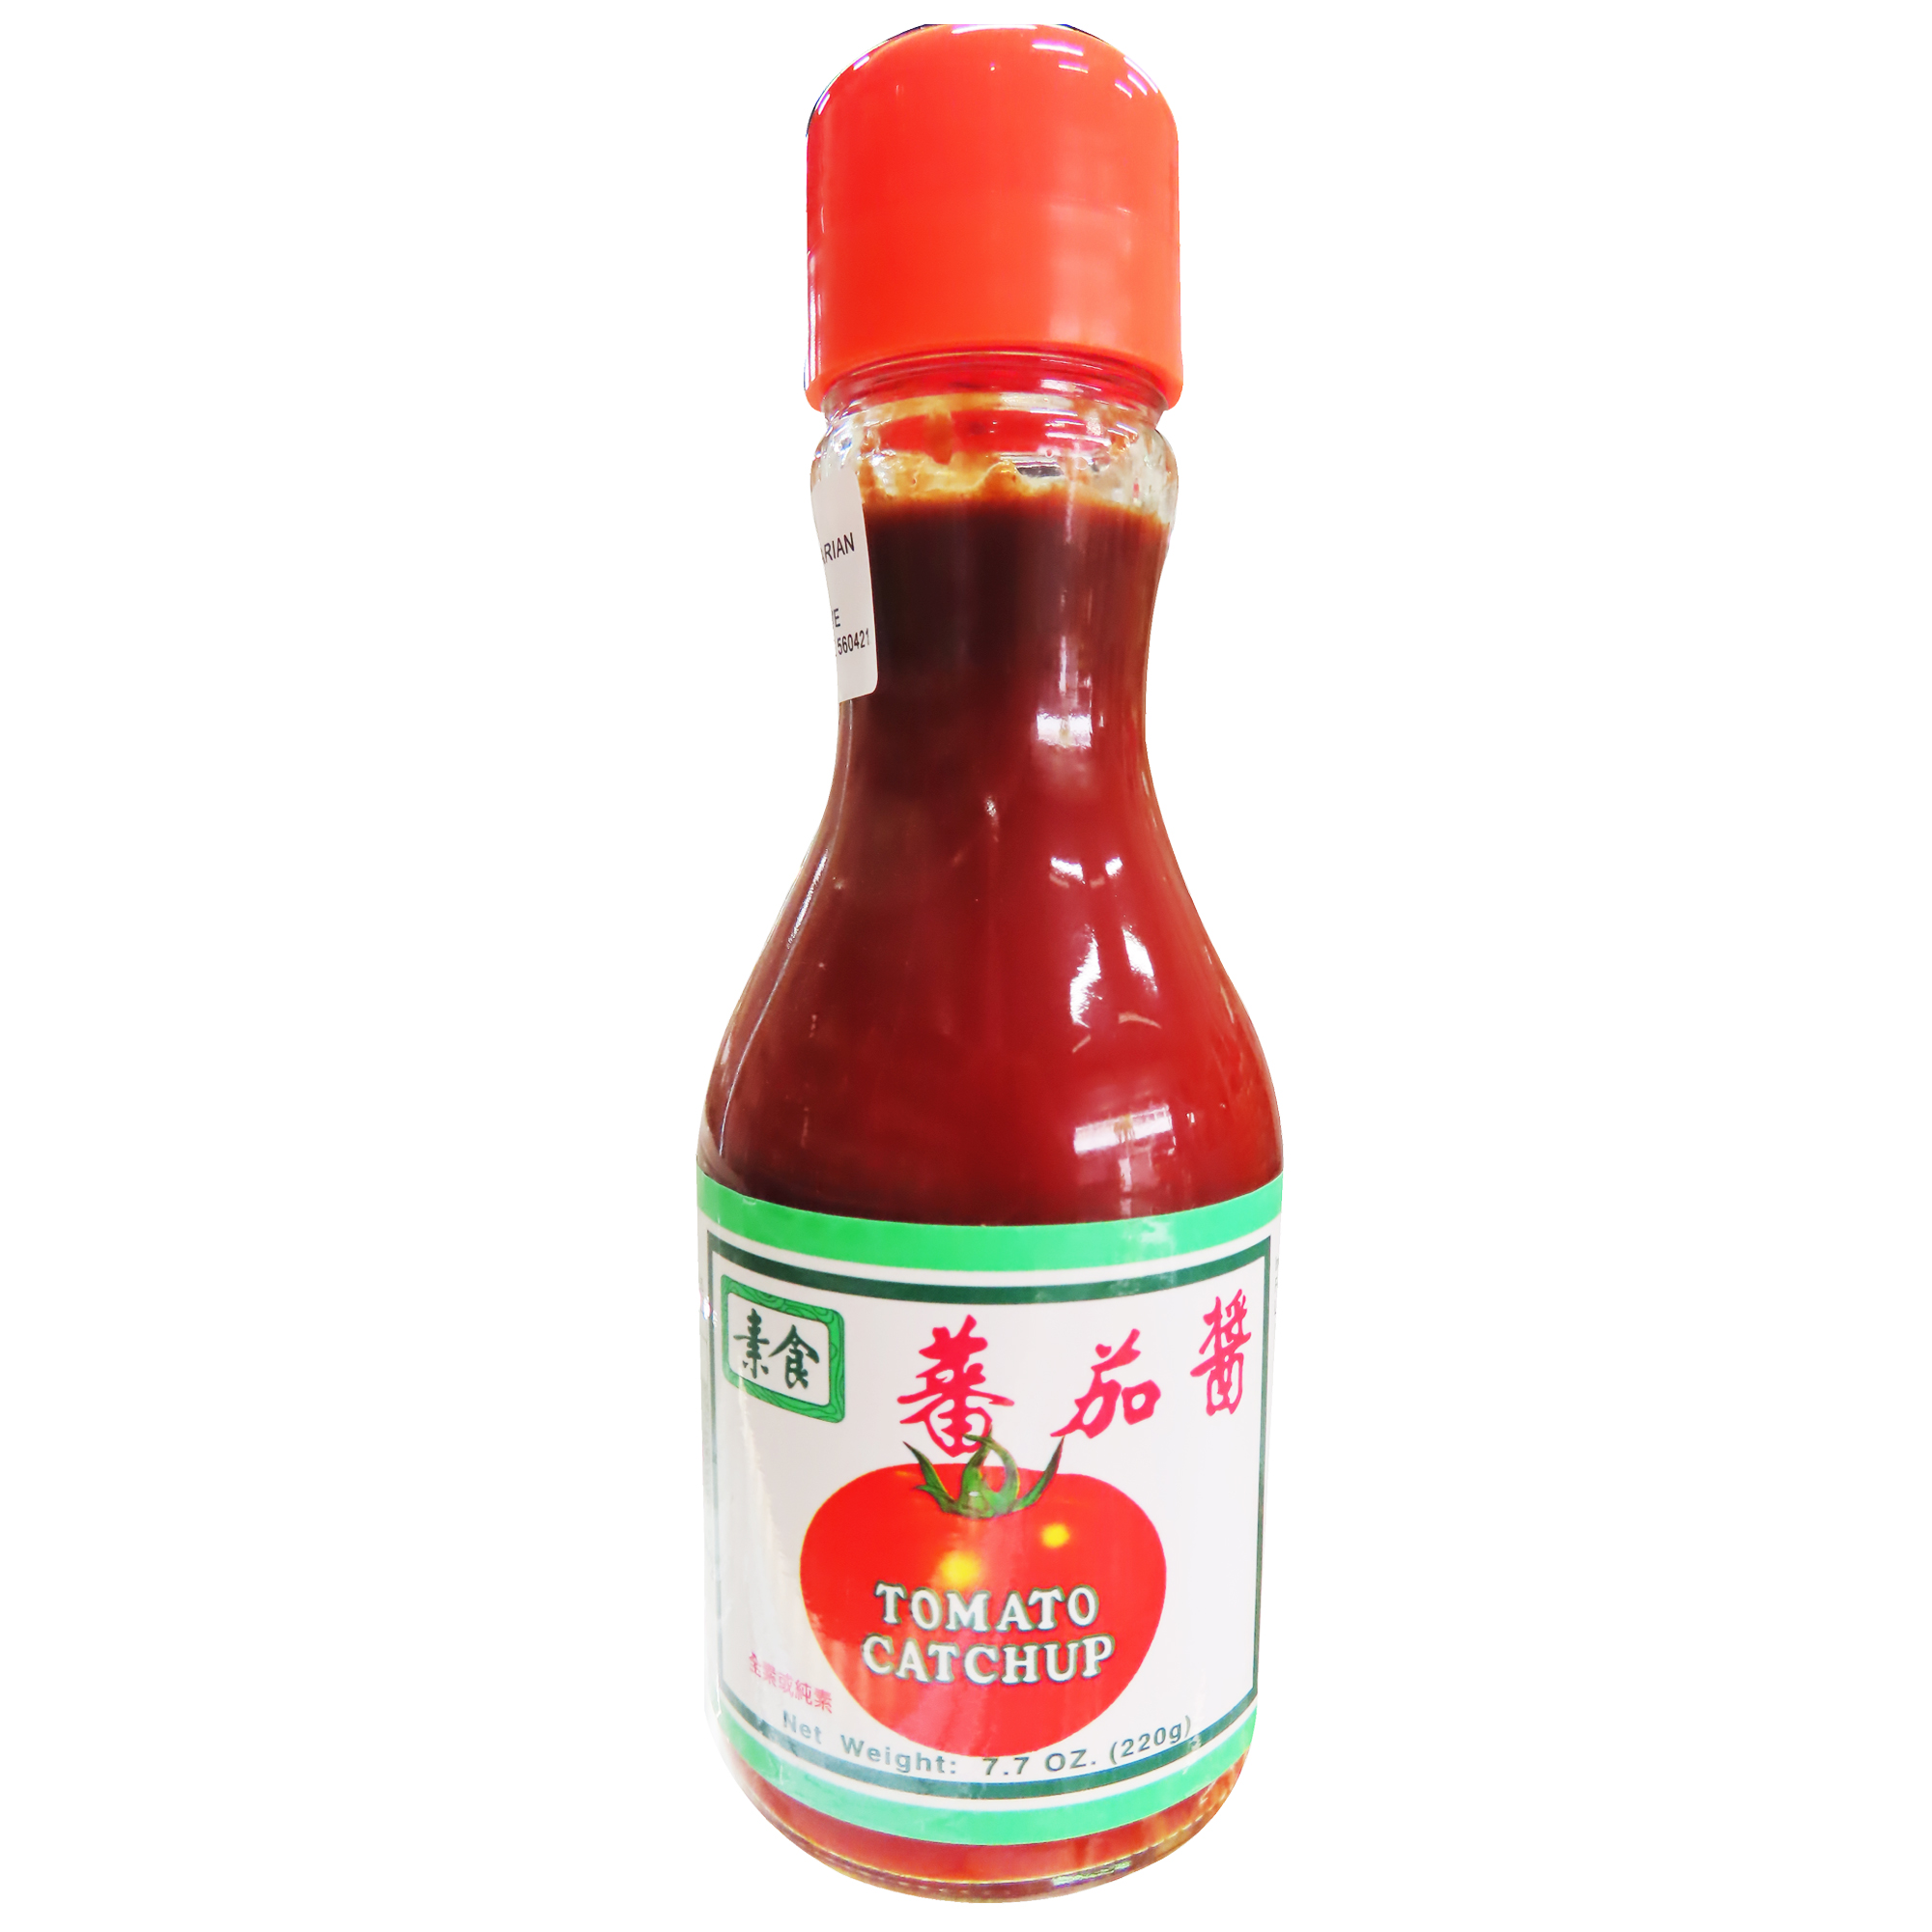 Image Tomato Catchup Ketchup 工研 - 番茄酱(小) 220grams